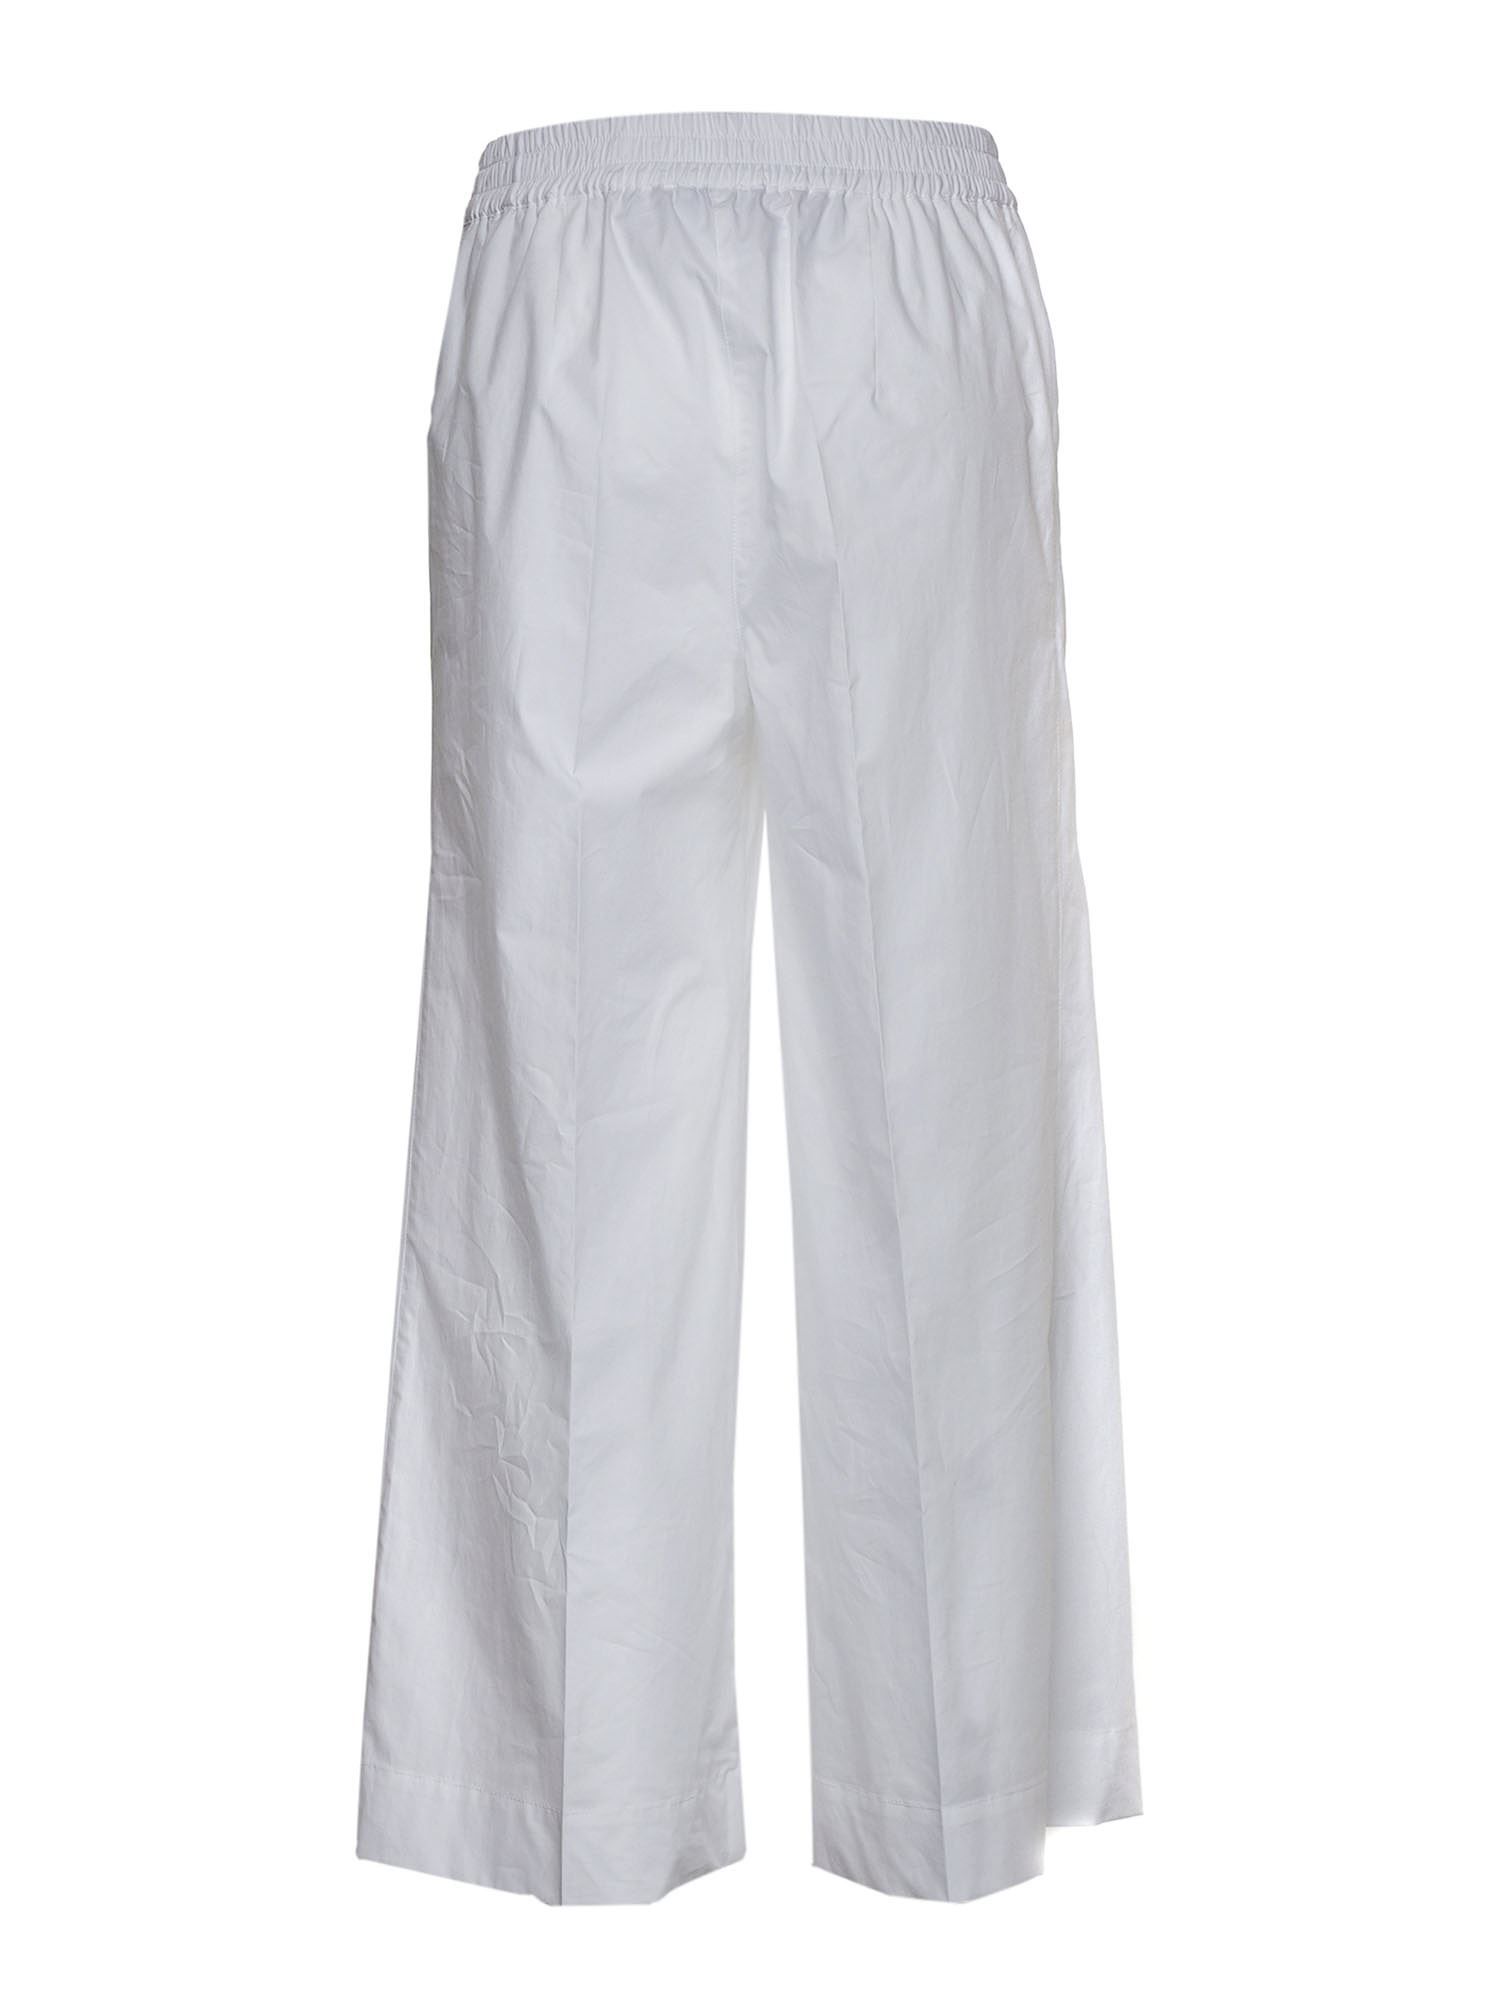 P.A.R.O.S.H. Cottons CROP TROUSERS IN WHITE